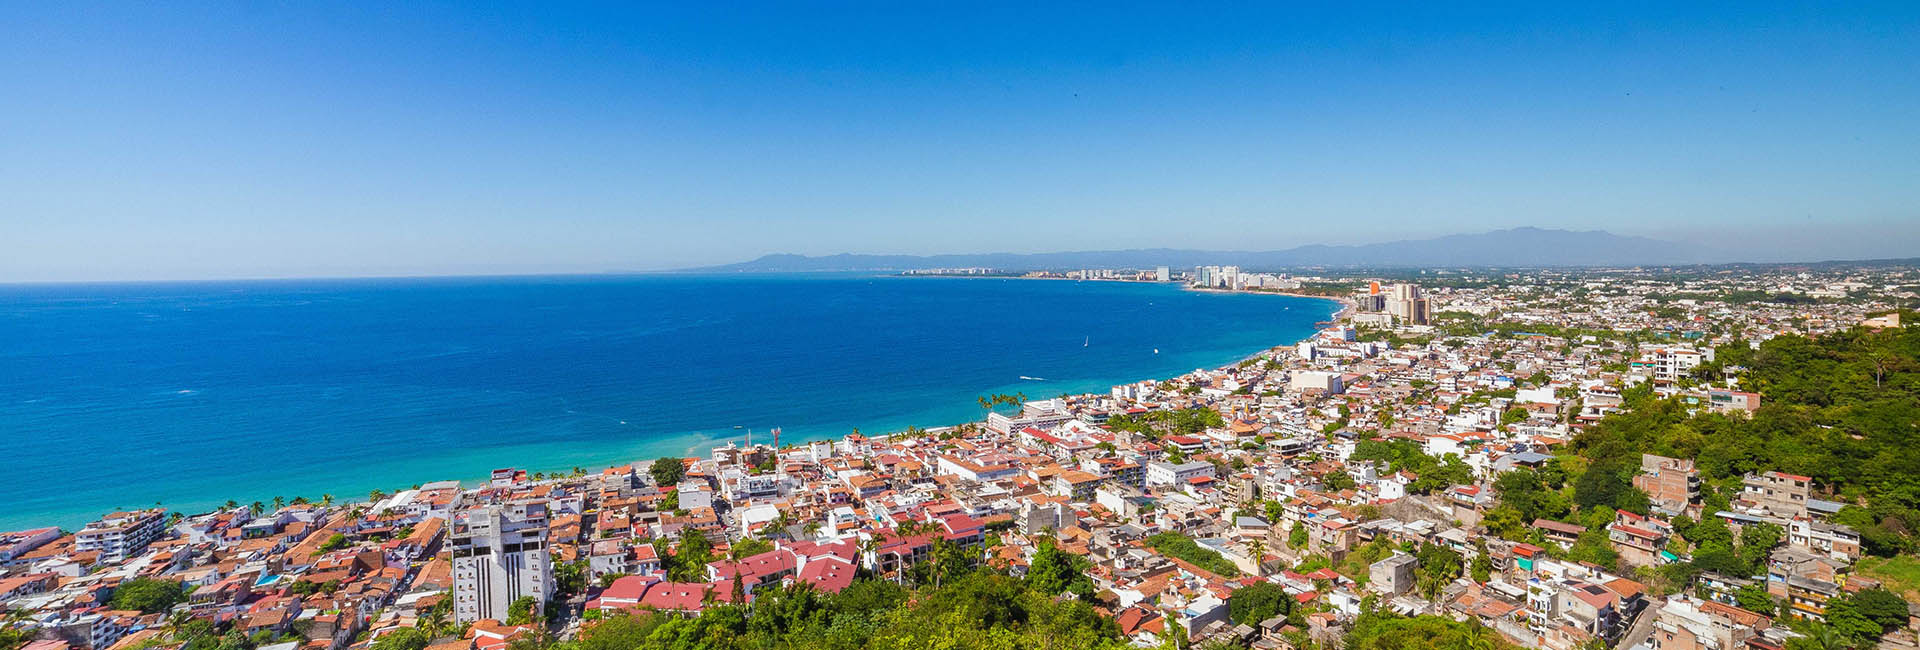 Best Places In Puerto Vallarta To Visit In 2019